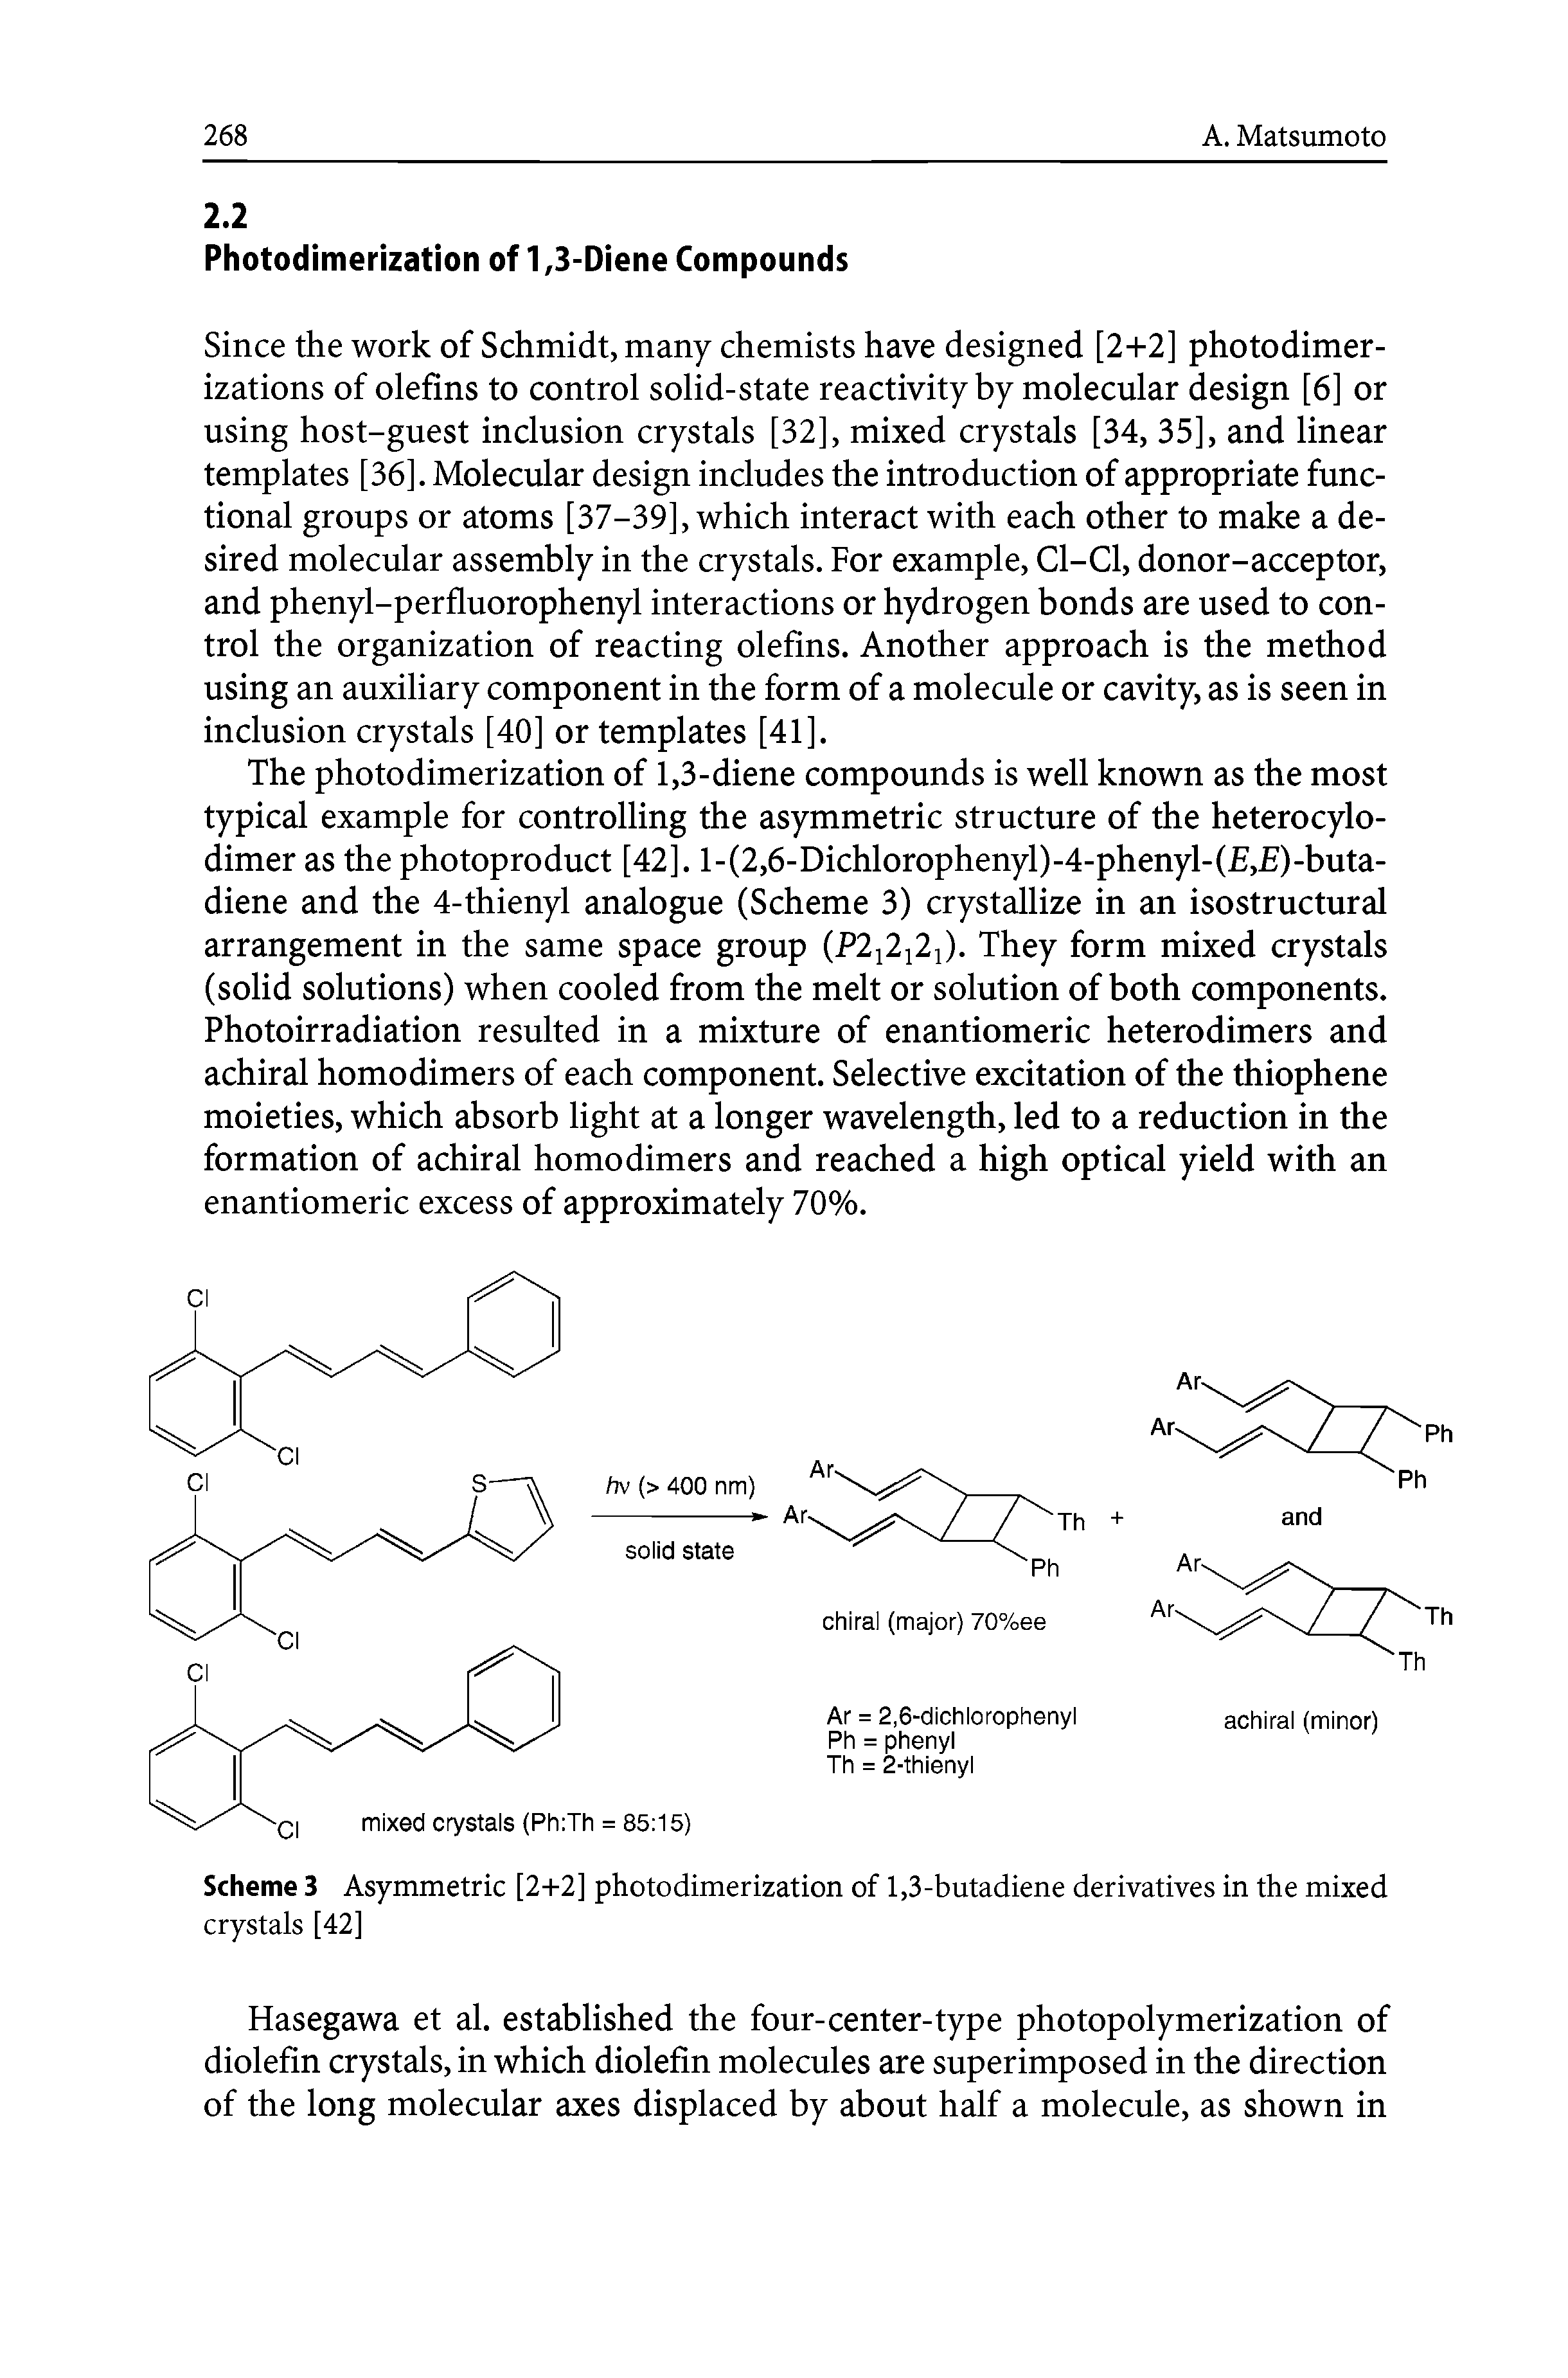 Scheme 3 Asymmetric [2-1-2] photodimerization of 1,3-butadiene derivatives in the mixed crystals [42]